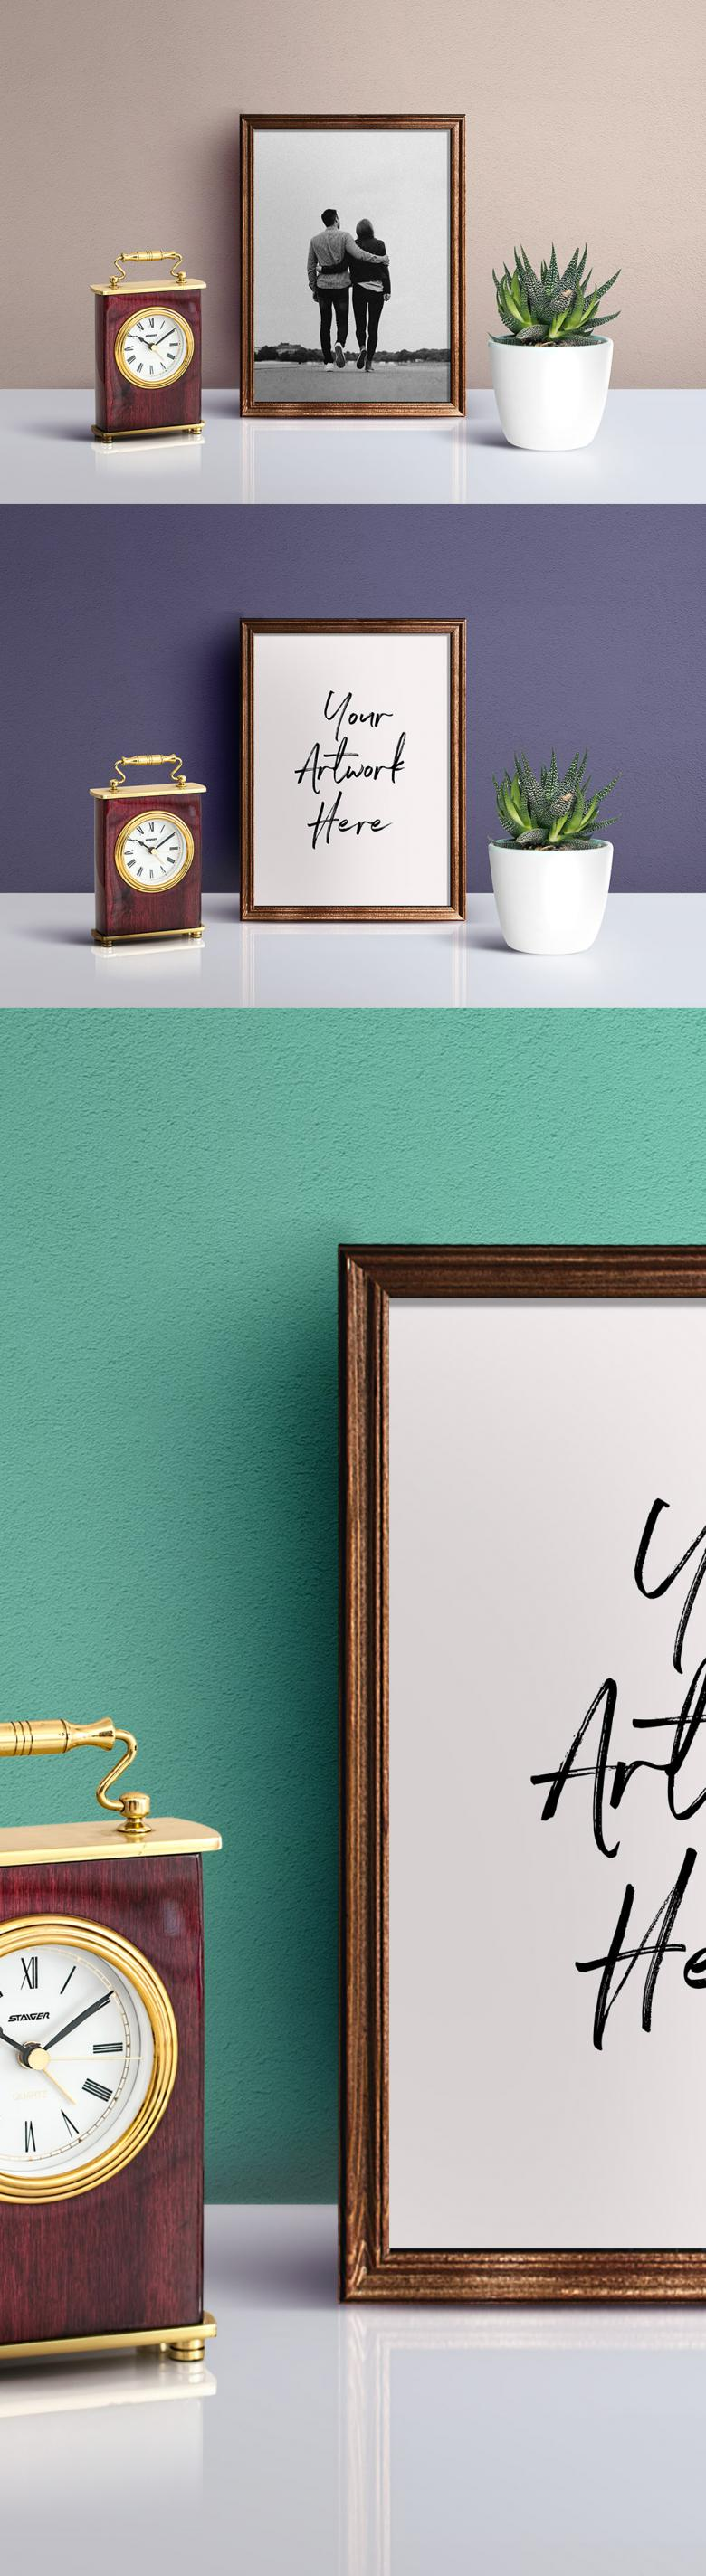 Picture Frame PSD Mockup